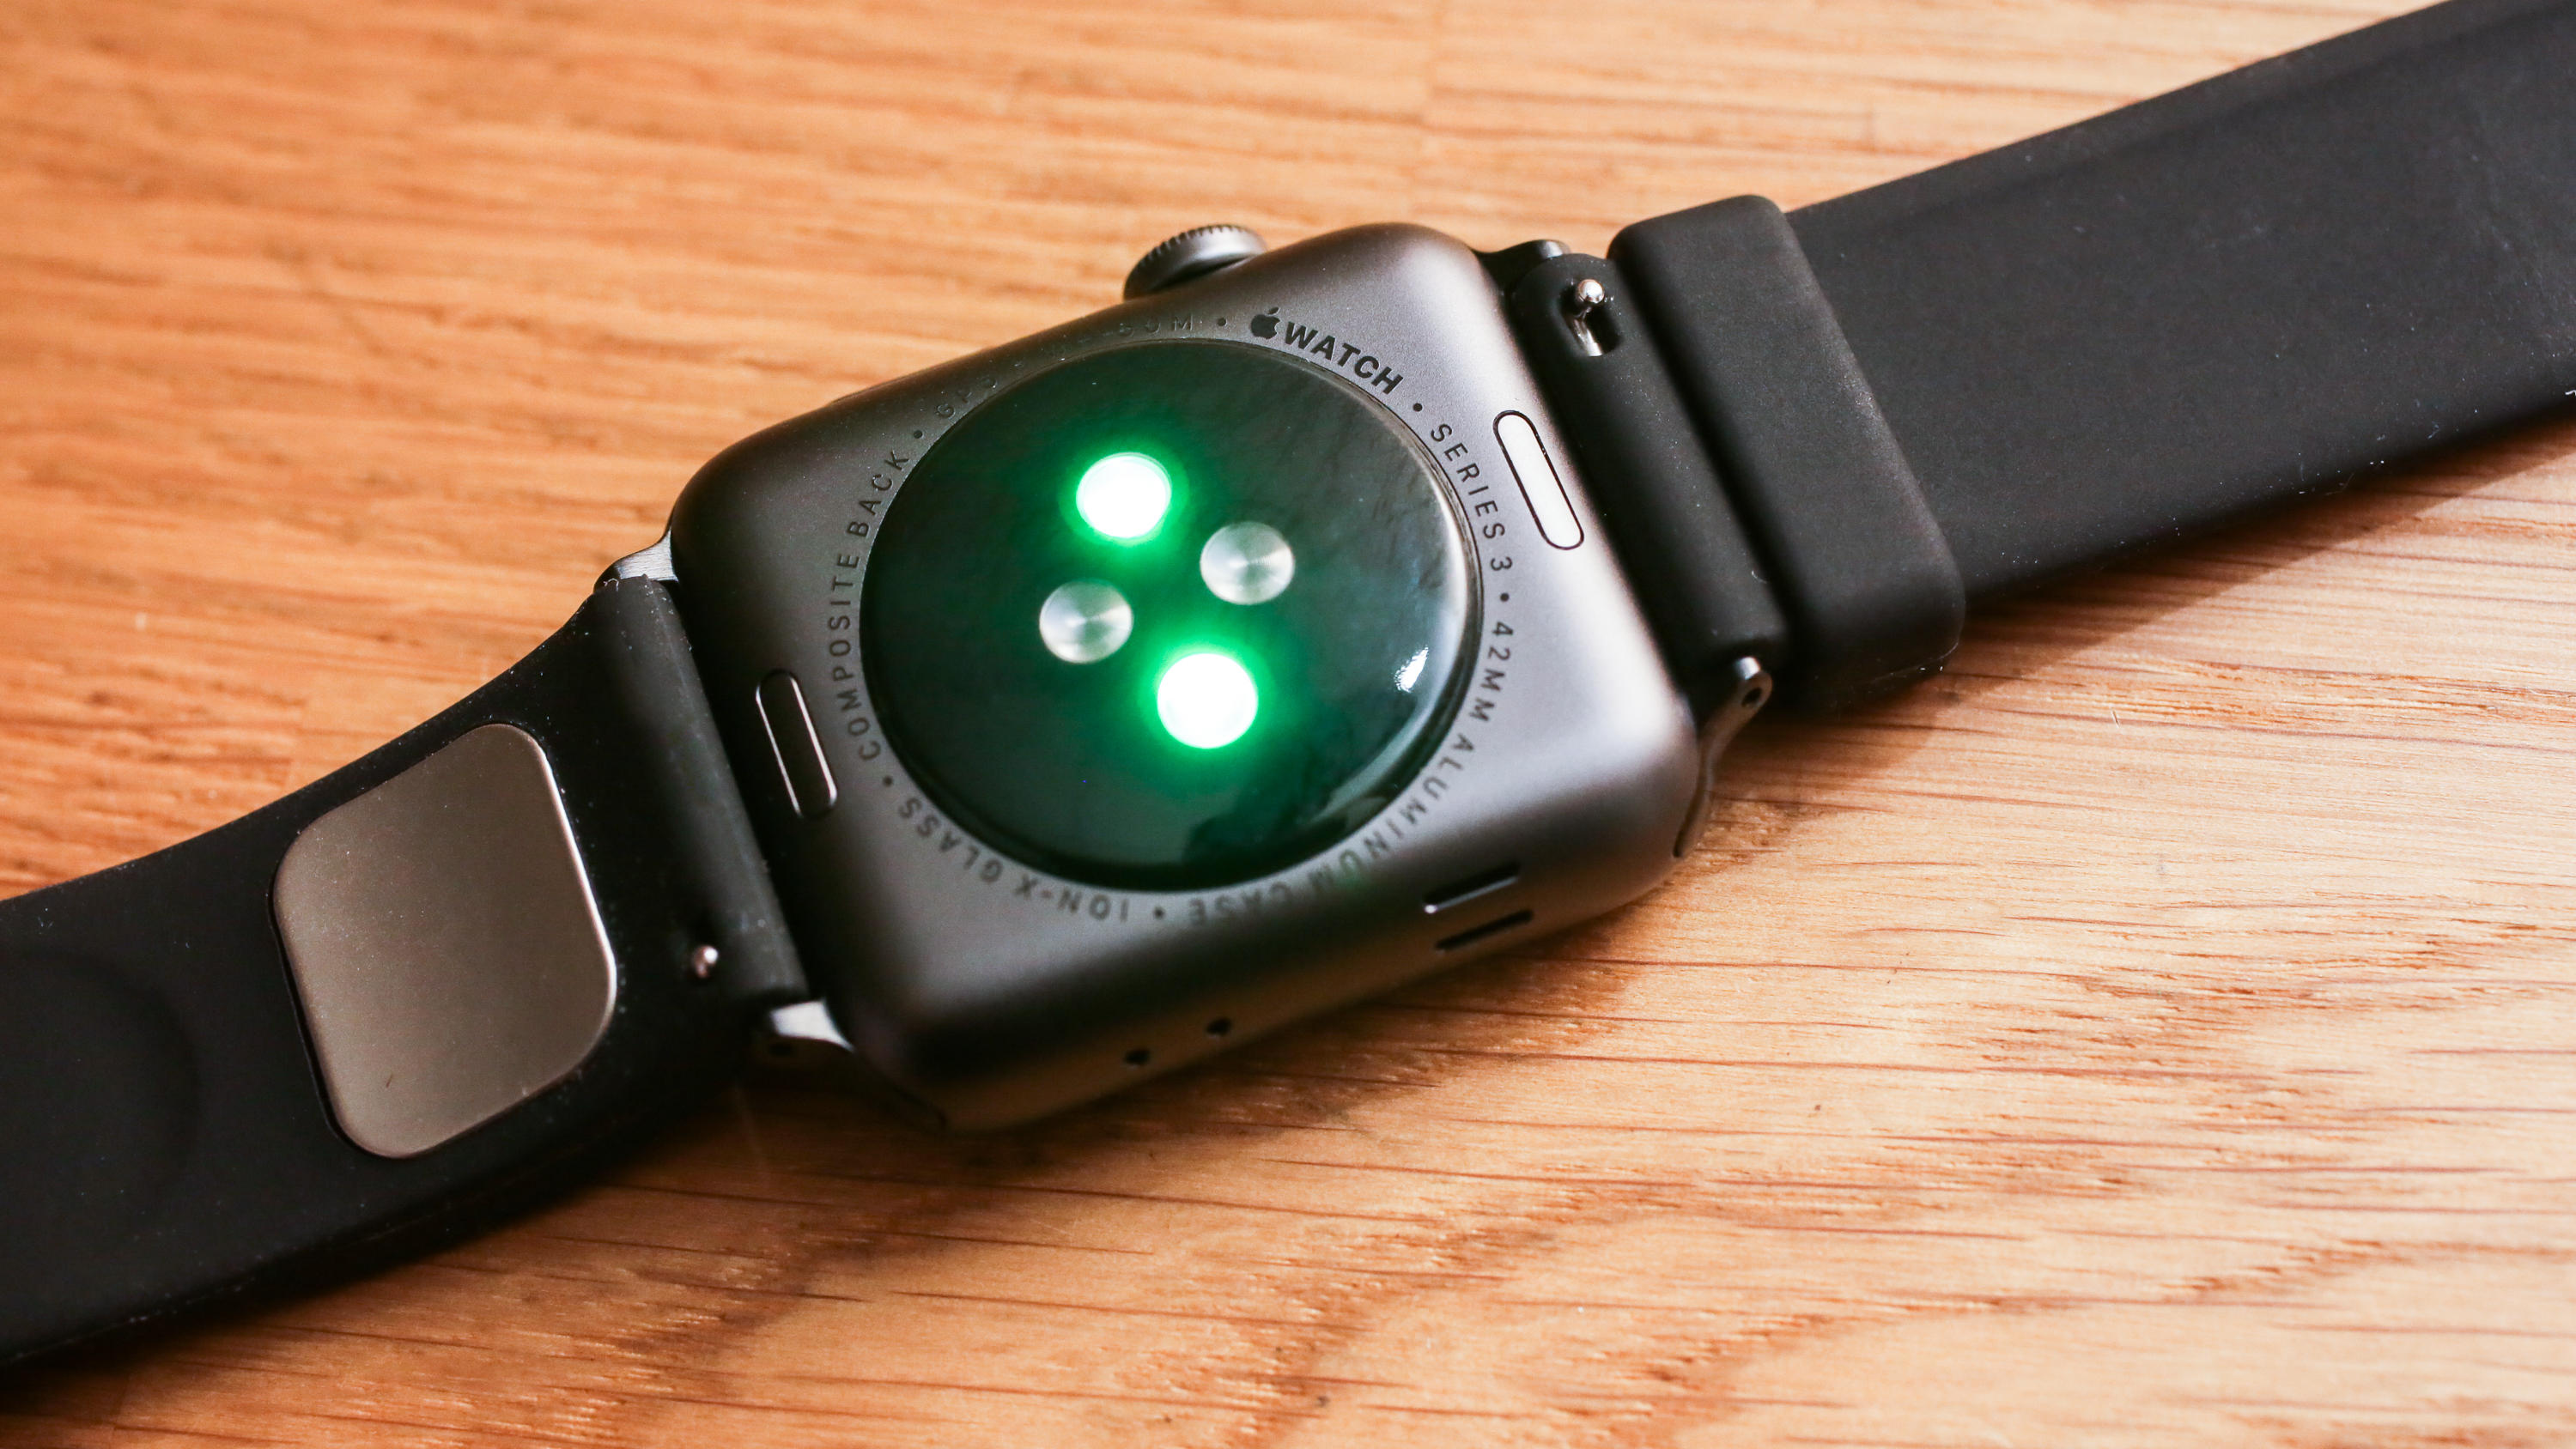 06-alivecor-kardia-band-for-apple-watch